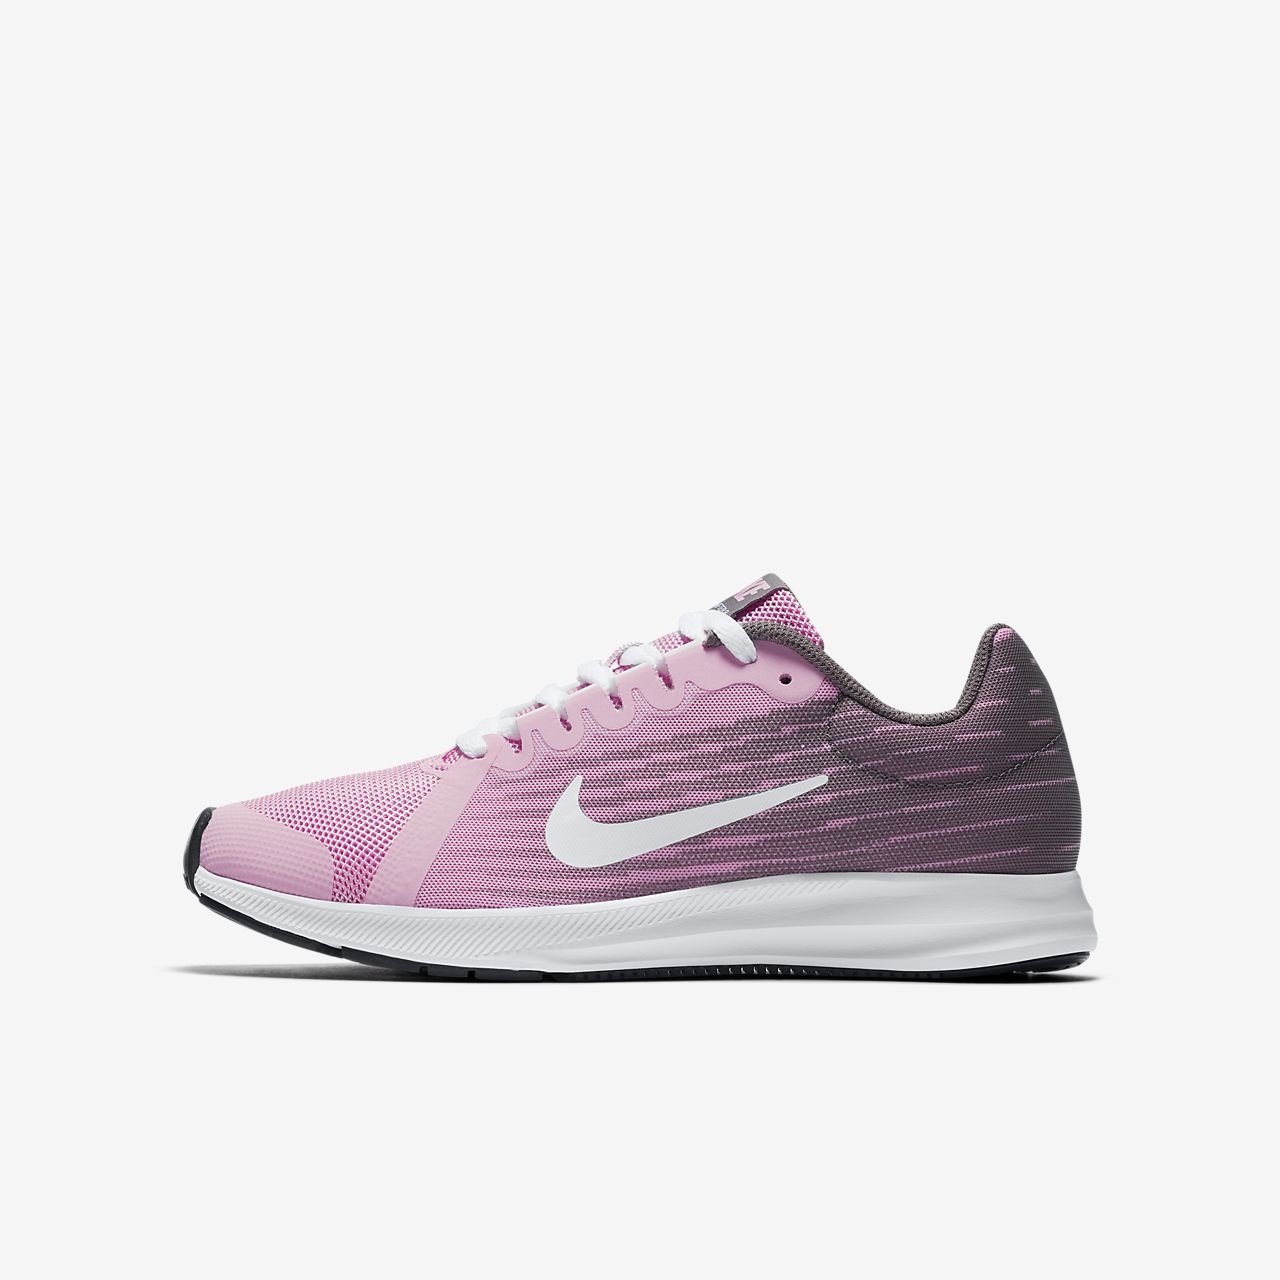 4c1b7e5a9af Nike Downshifter 8 Older Kids  Running Shoe. Nike.com AU